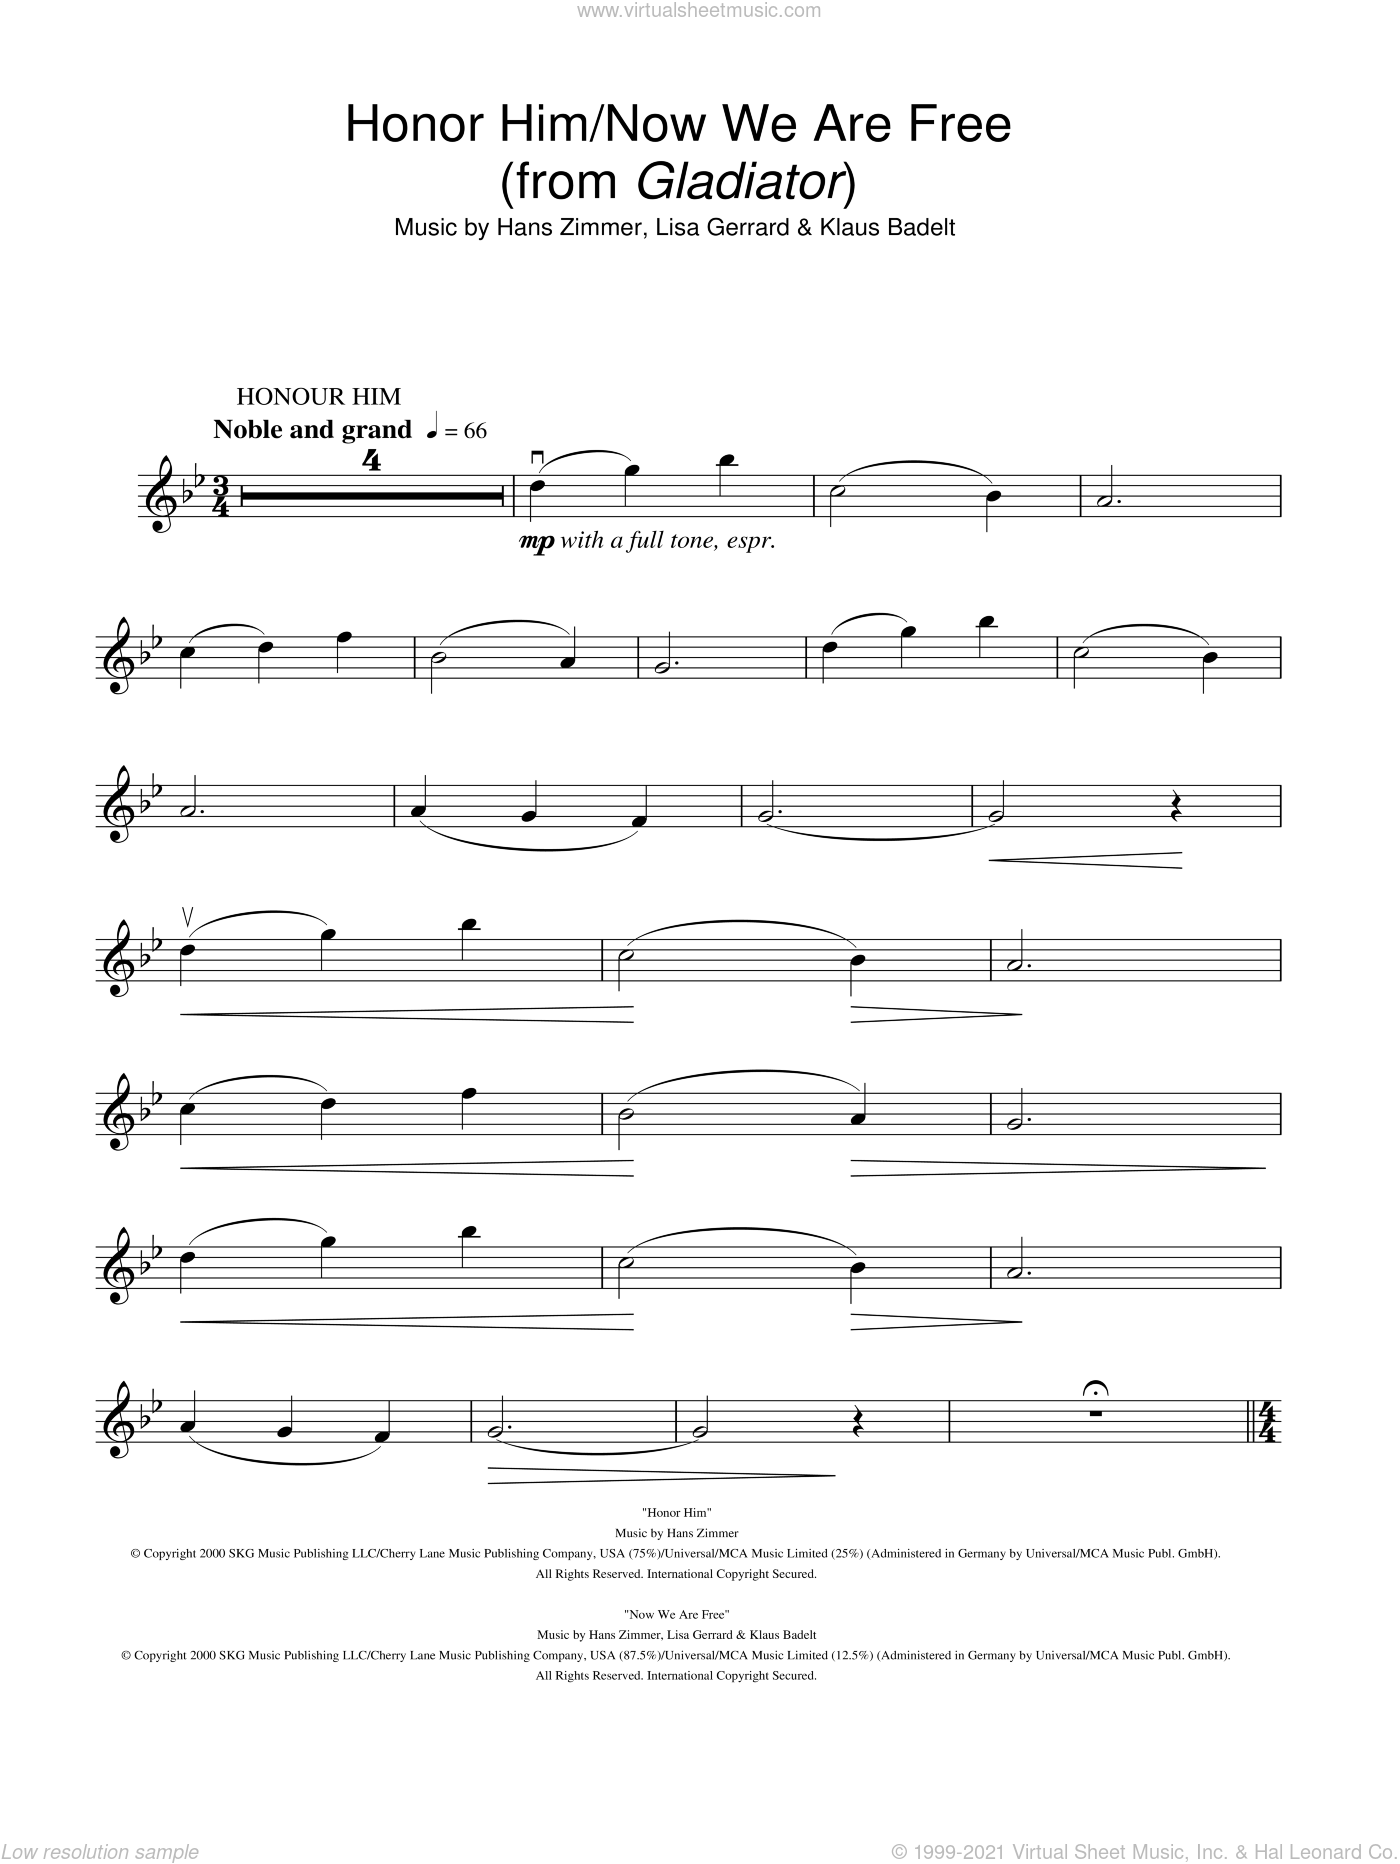 Zimmer - Honor Him/Now We Are Free (from Gladiator) sheet music for violin  solo